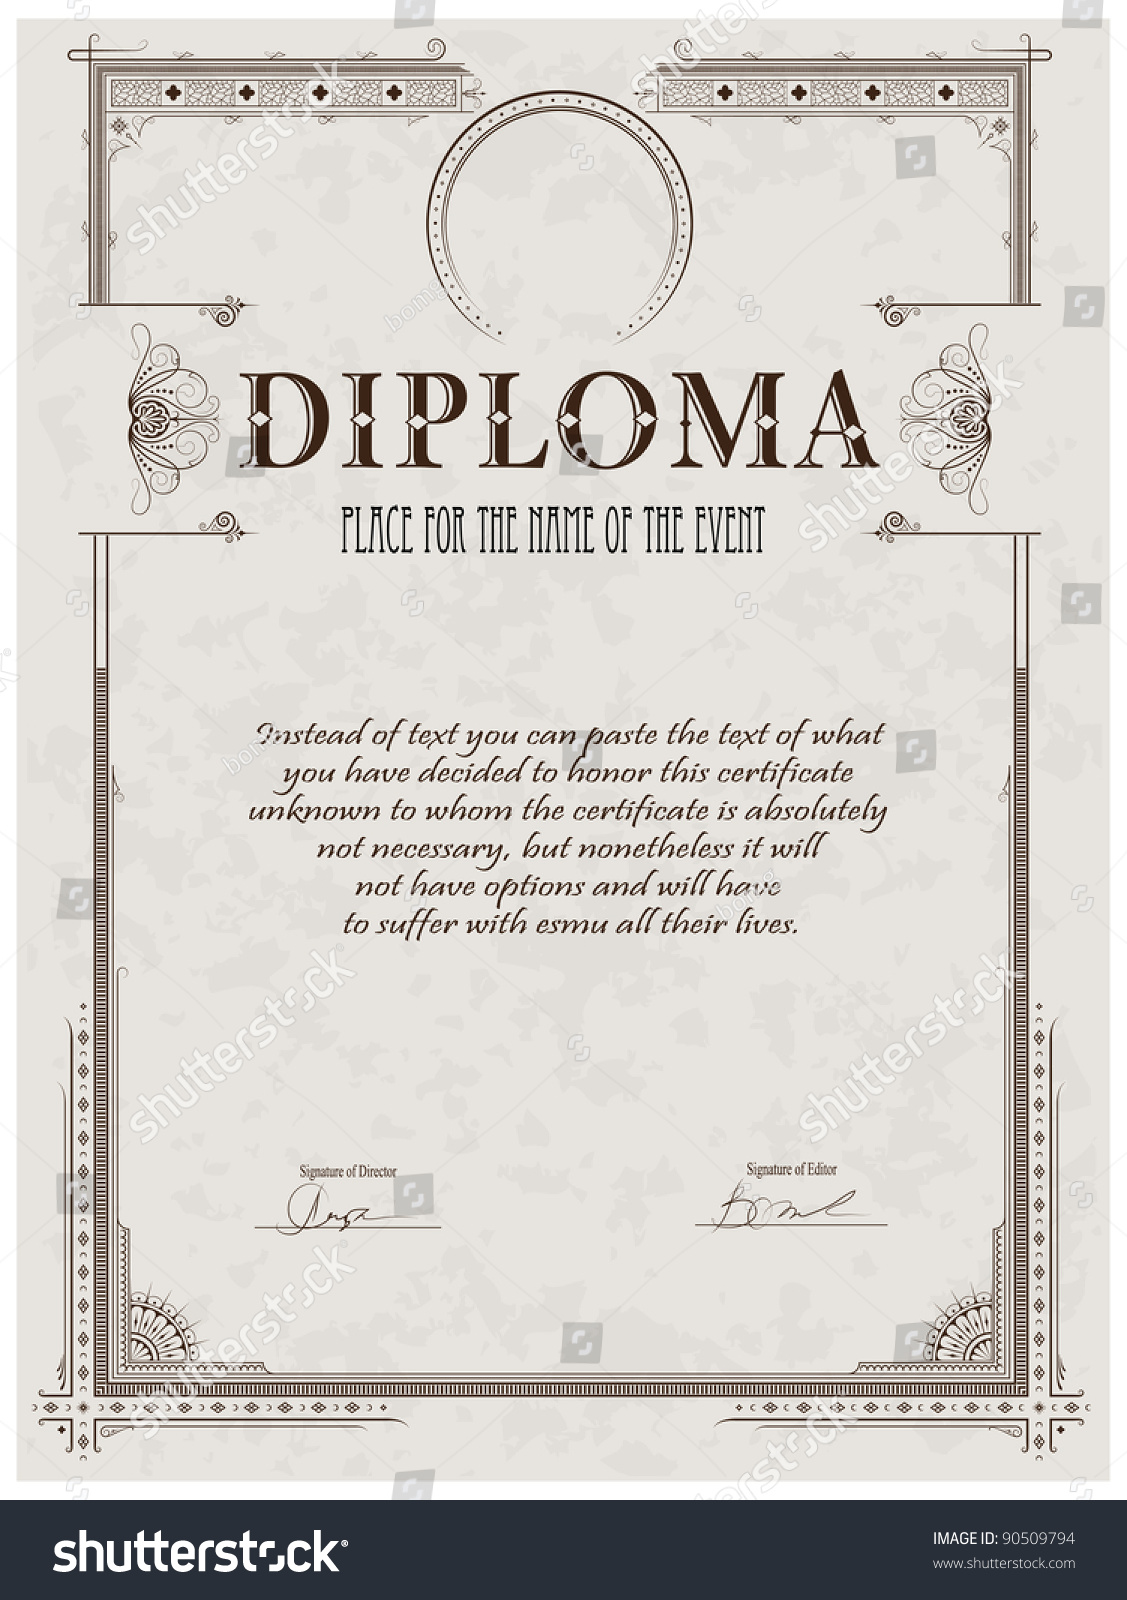 Vintage frame certificate or diploma template stock for Certificate frame template